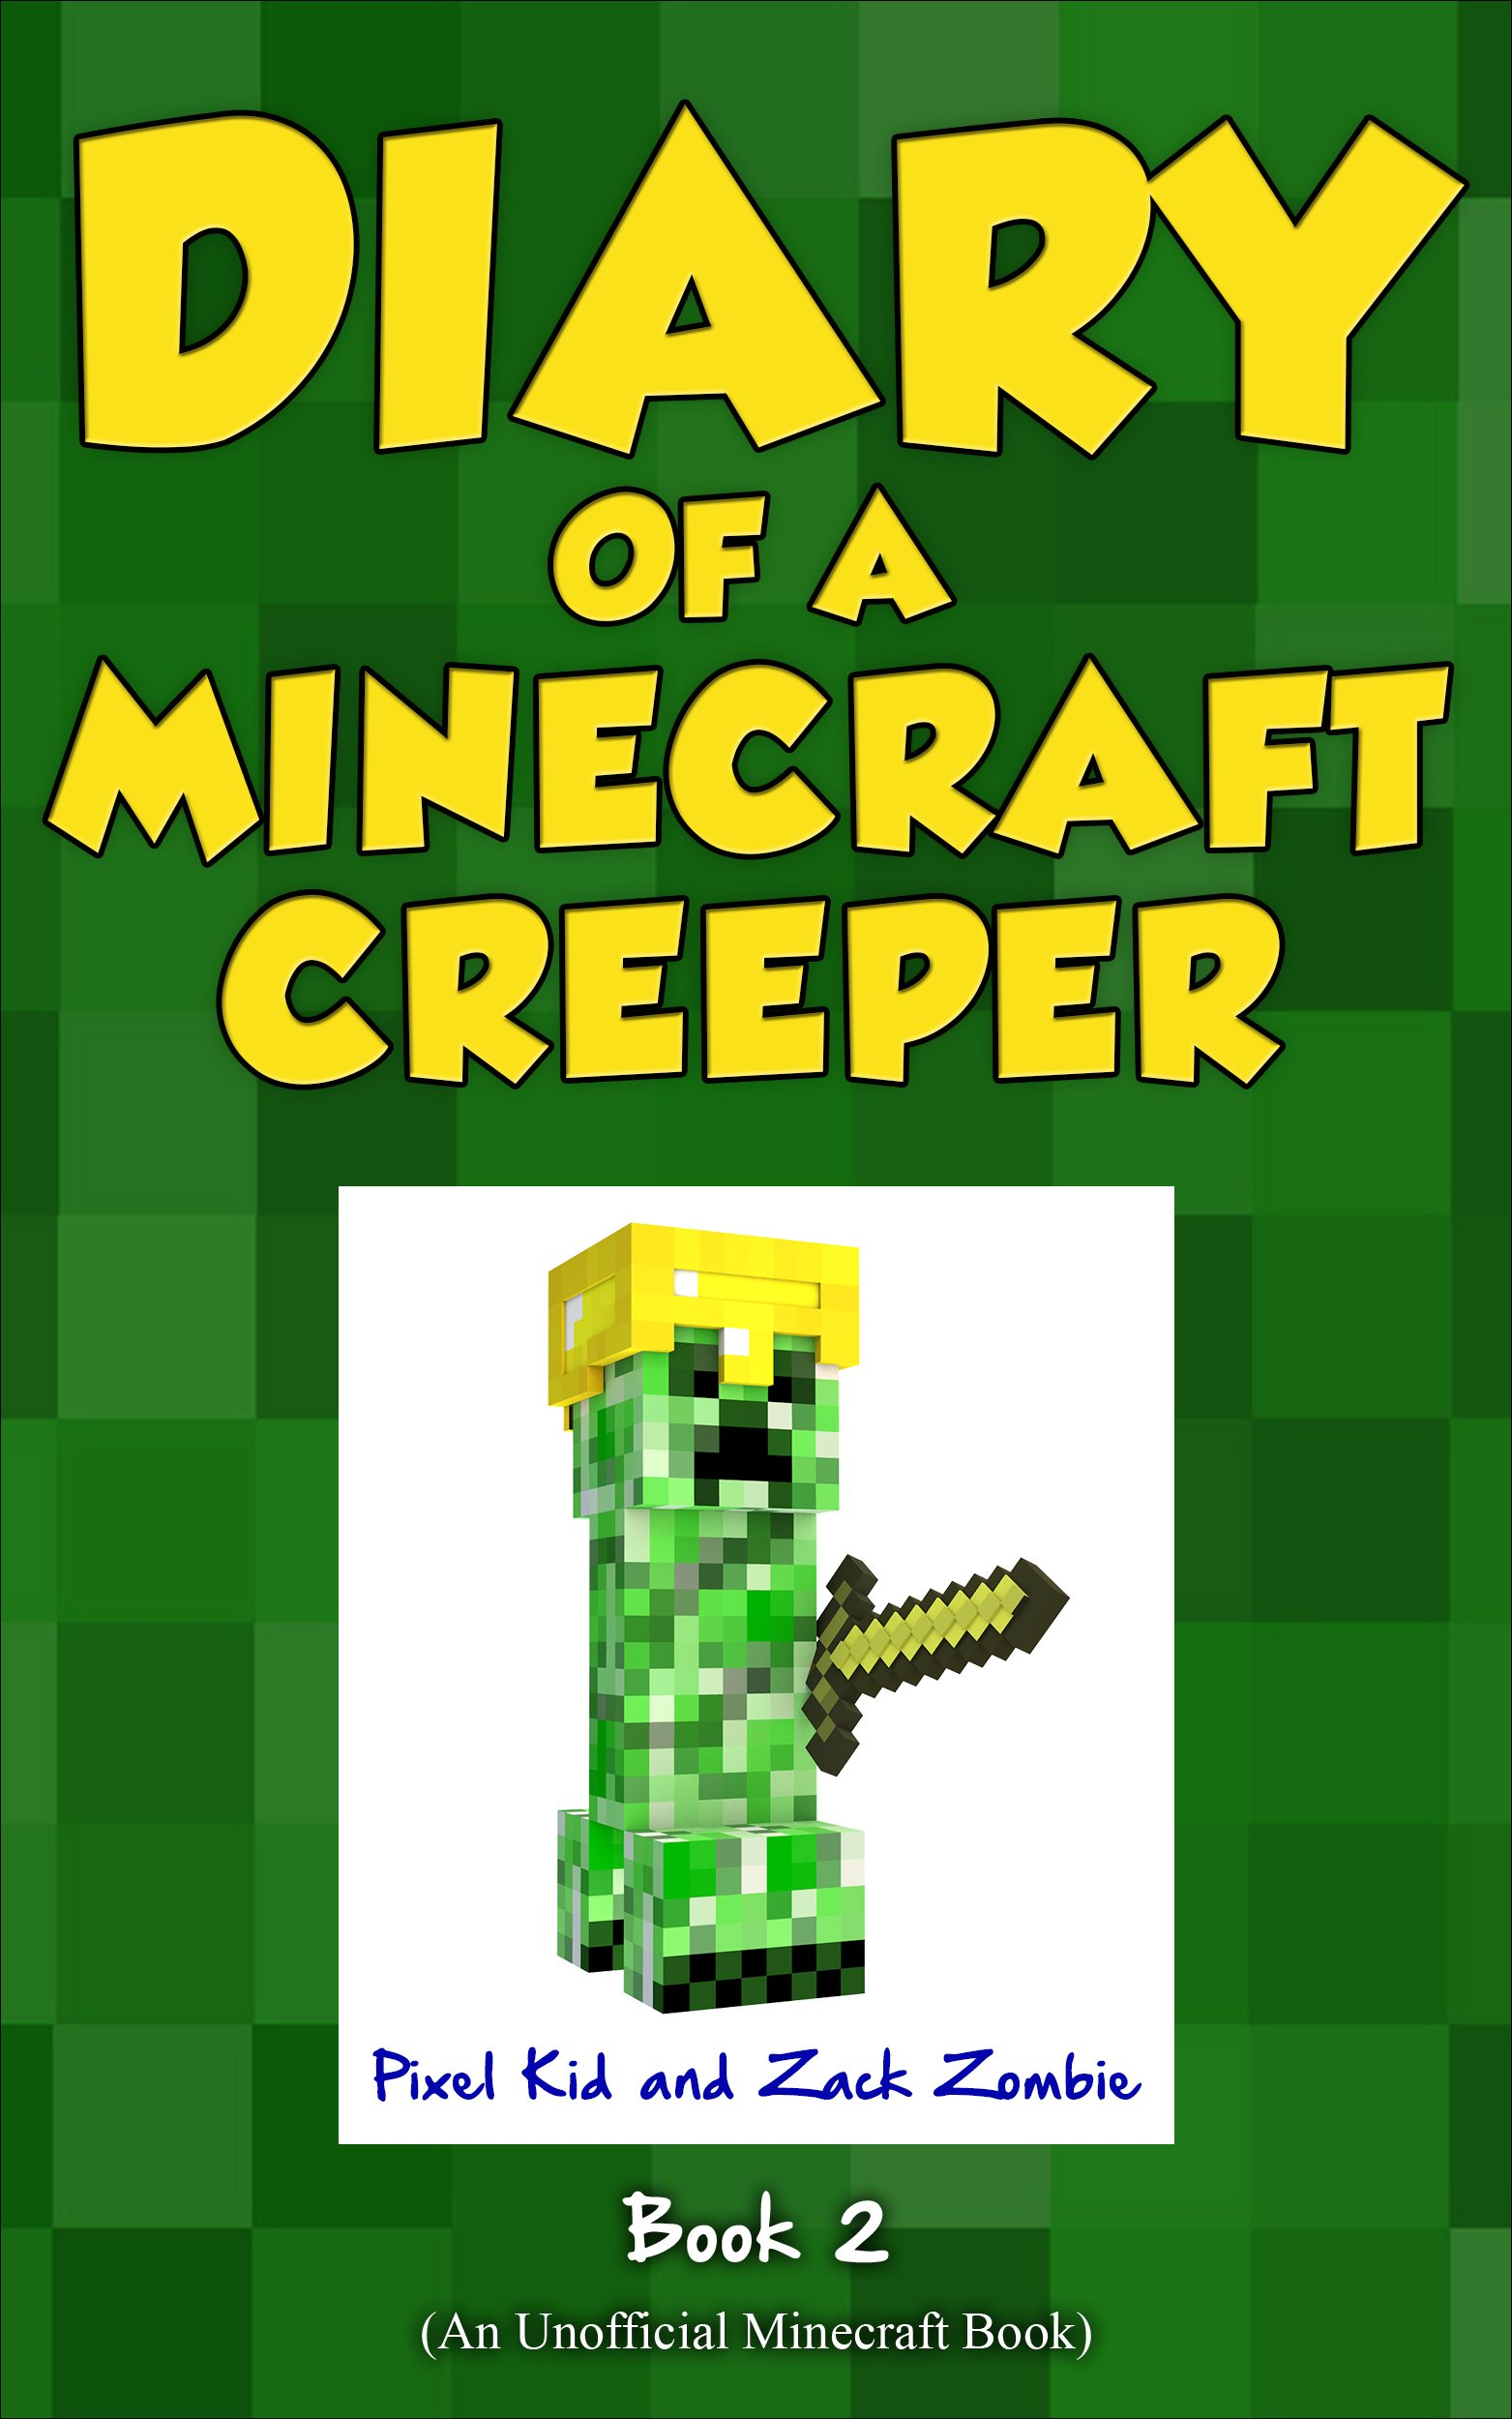 Minecraft Books: Diary of a Minecraft Creeper Book 2: Silent But Deadly (An Unofficial Minecraft Book) por Pixel Kid